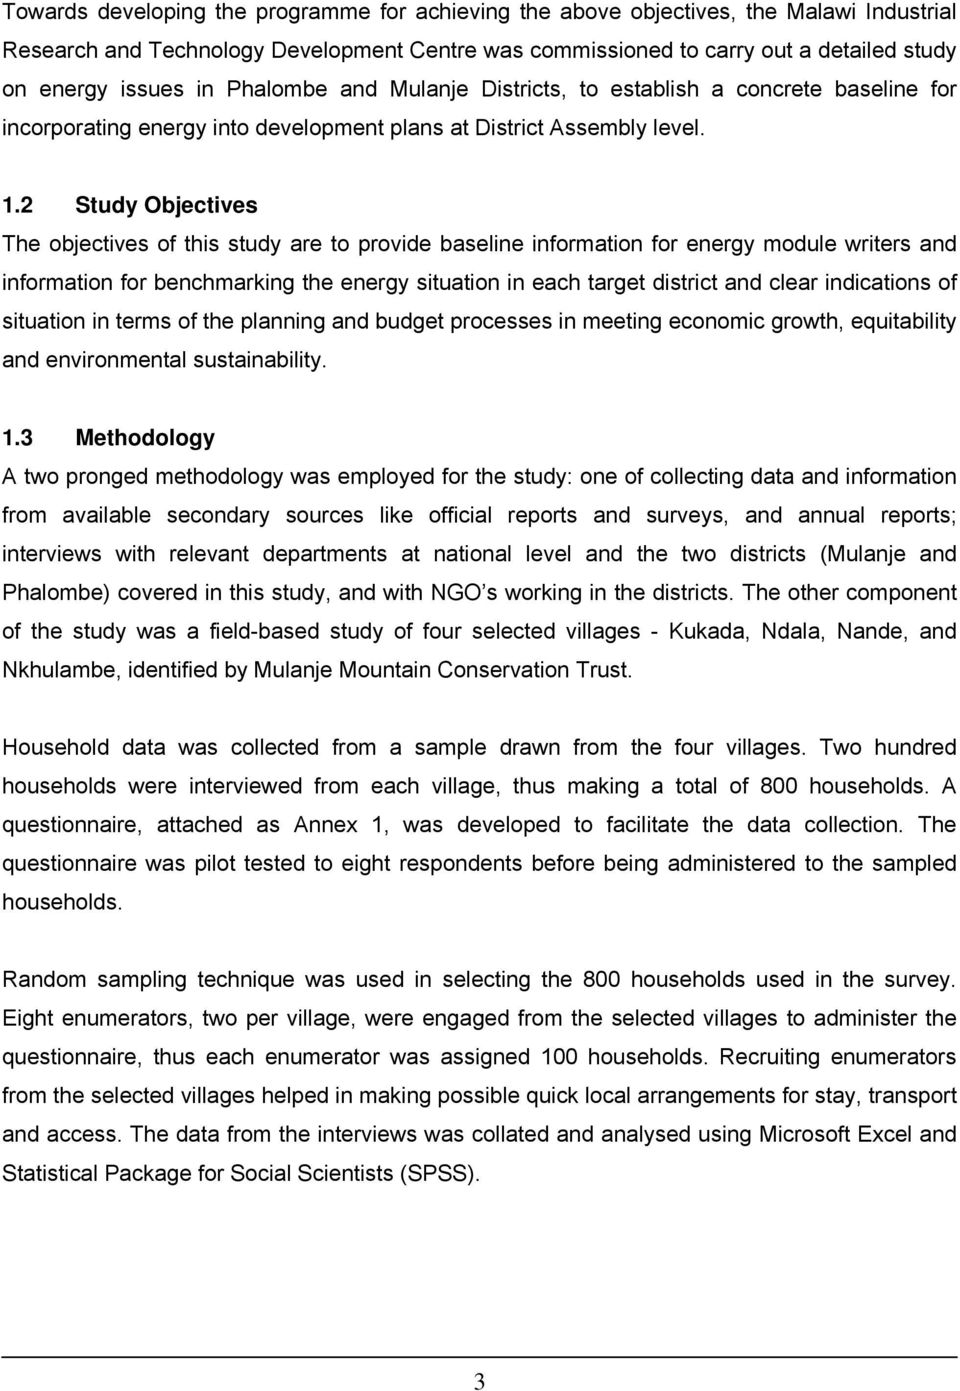 2 Study Objectives The objectives of this study are to provide baseline information for energy module writers and information for benchmarking the energy situation in each target district and clear